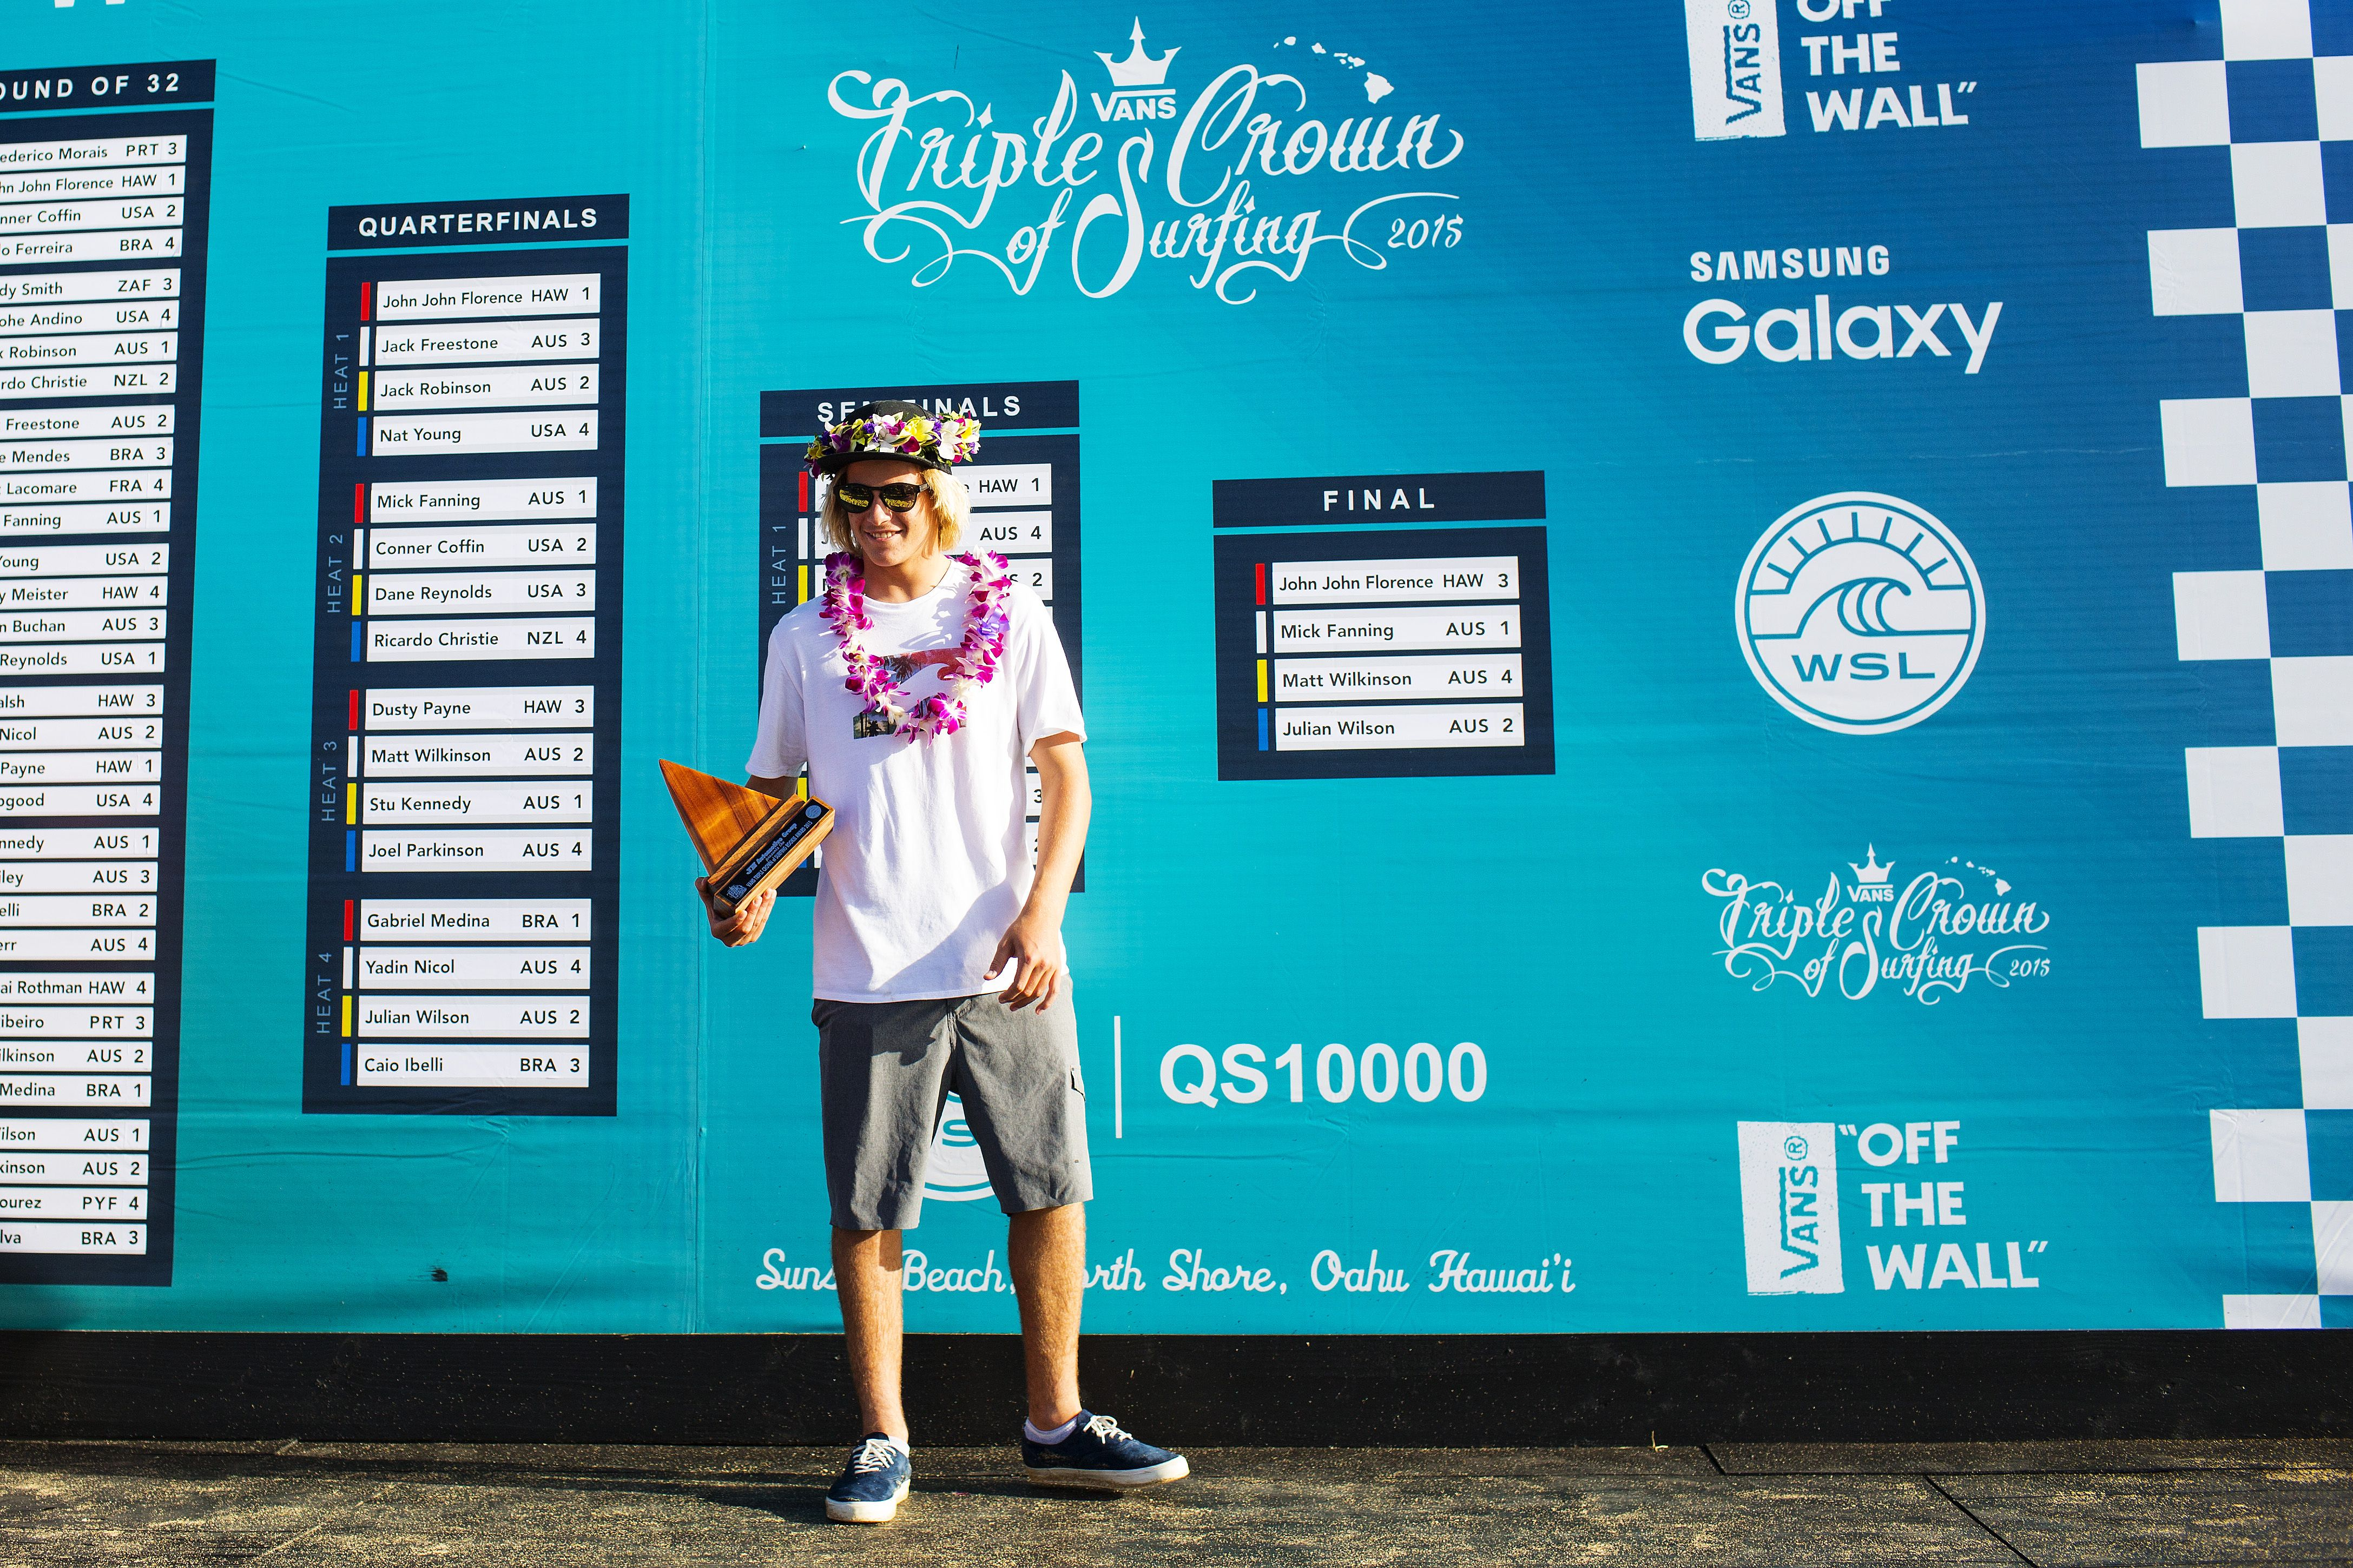 Jack Robinson of Australia winner of the JN Automotive Rookie of the Year Award at the Vans World Cup of Surfing at Sunset Beach, Oahu, Hawaii on Thursday December 3, 2015.